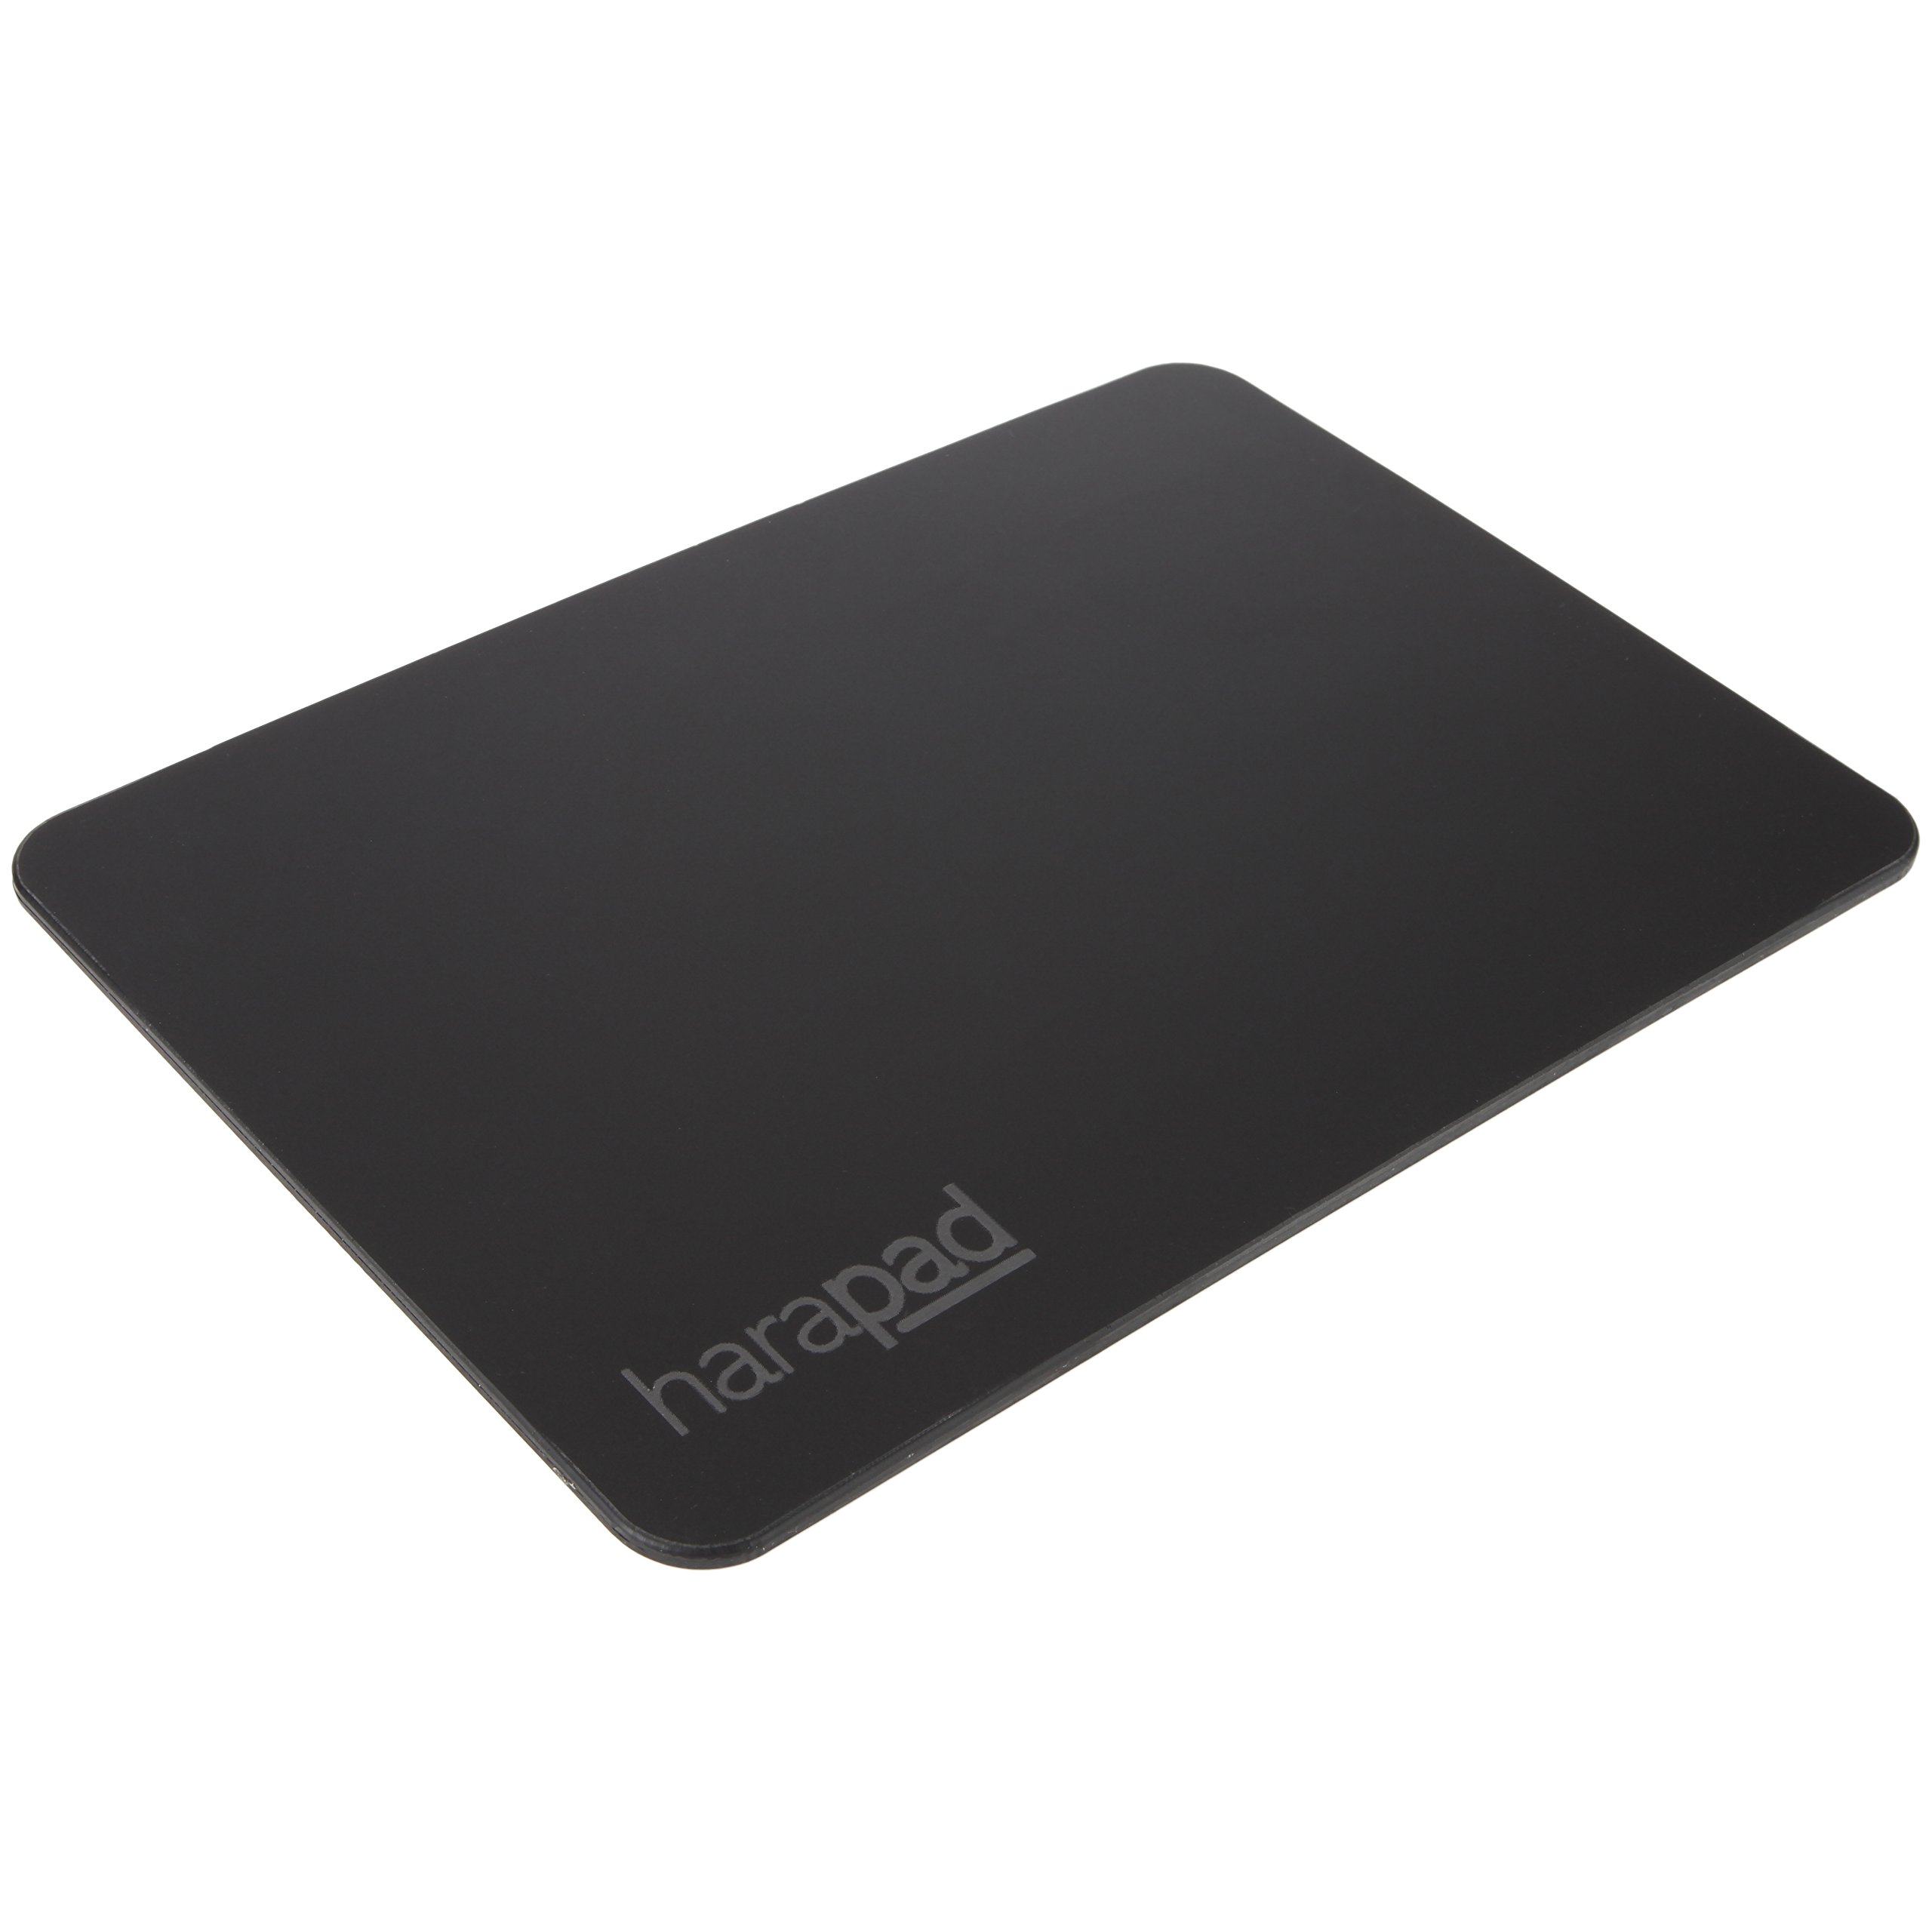 "Laptop EMF Pad Providing EMF and Radiation Protection. Black For 17"" Laptops by HARApad"